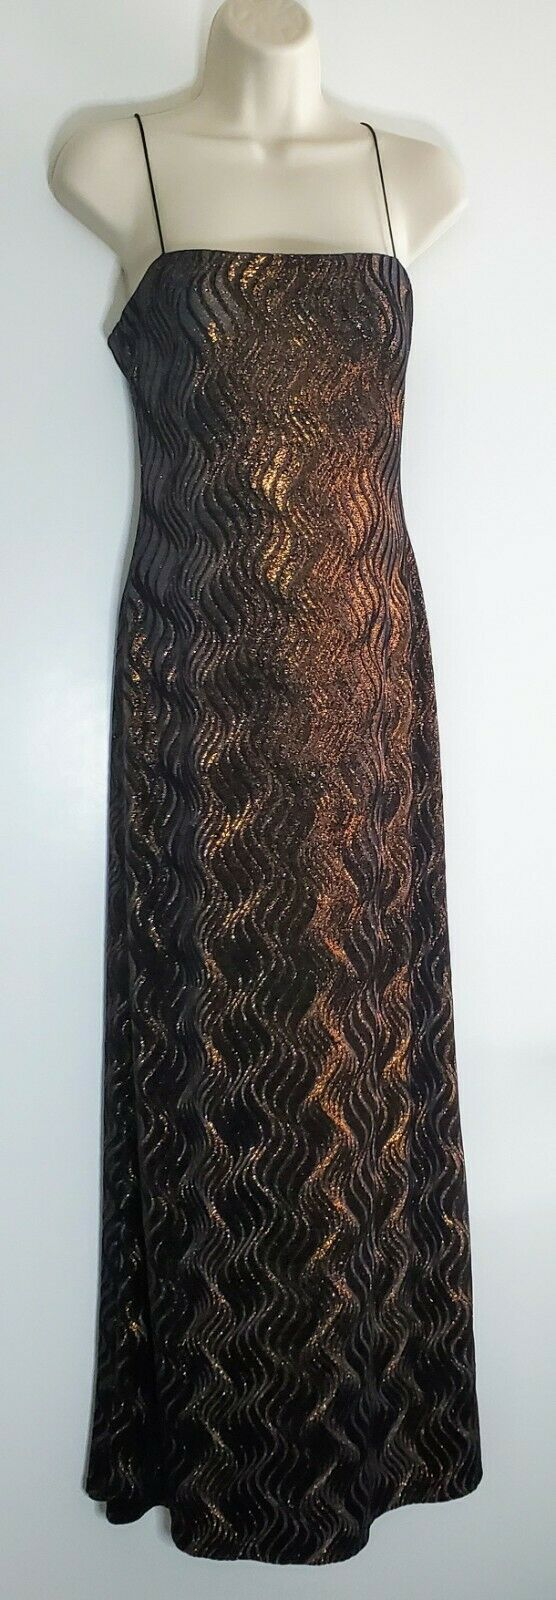 JS Boutique Evening Dress Formal Gown Gold Spangled on Black Spaghetti Straps